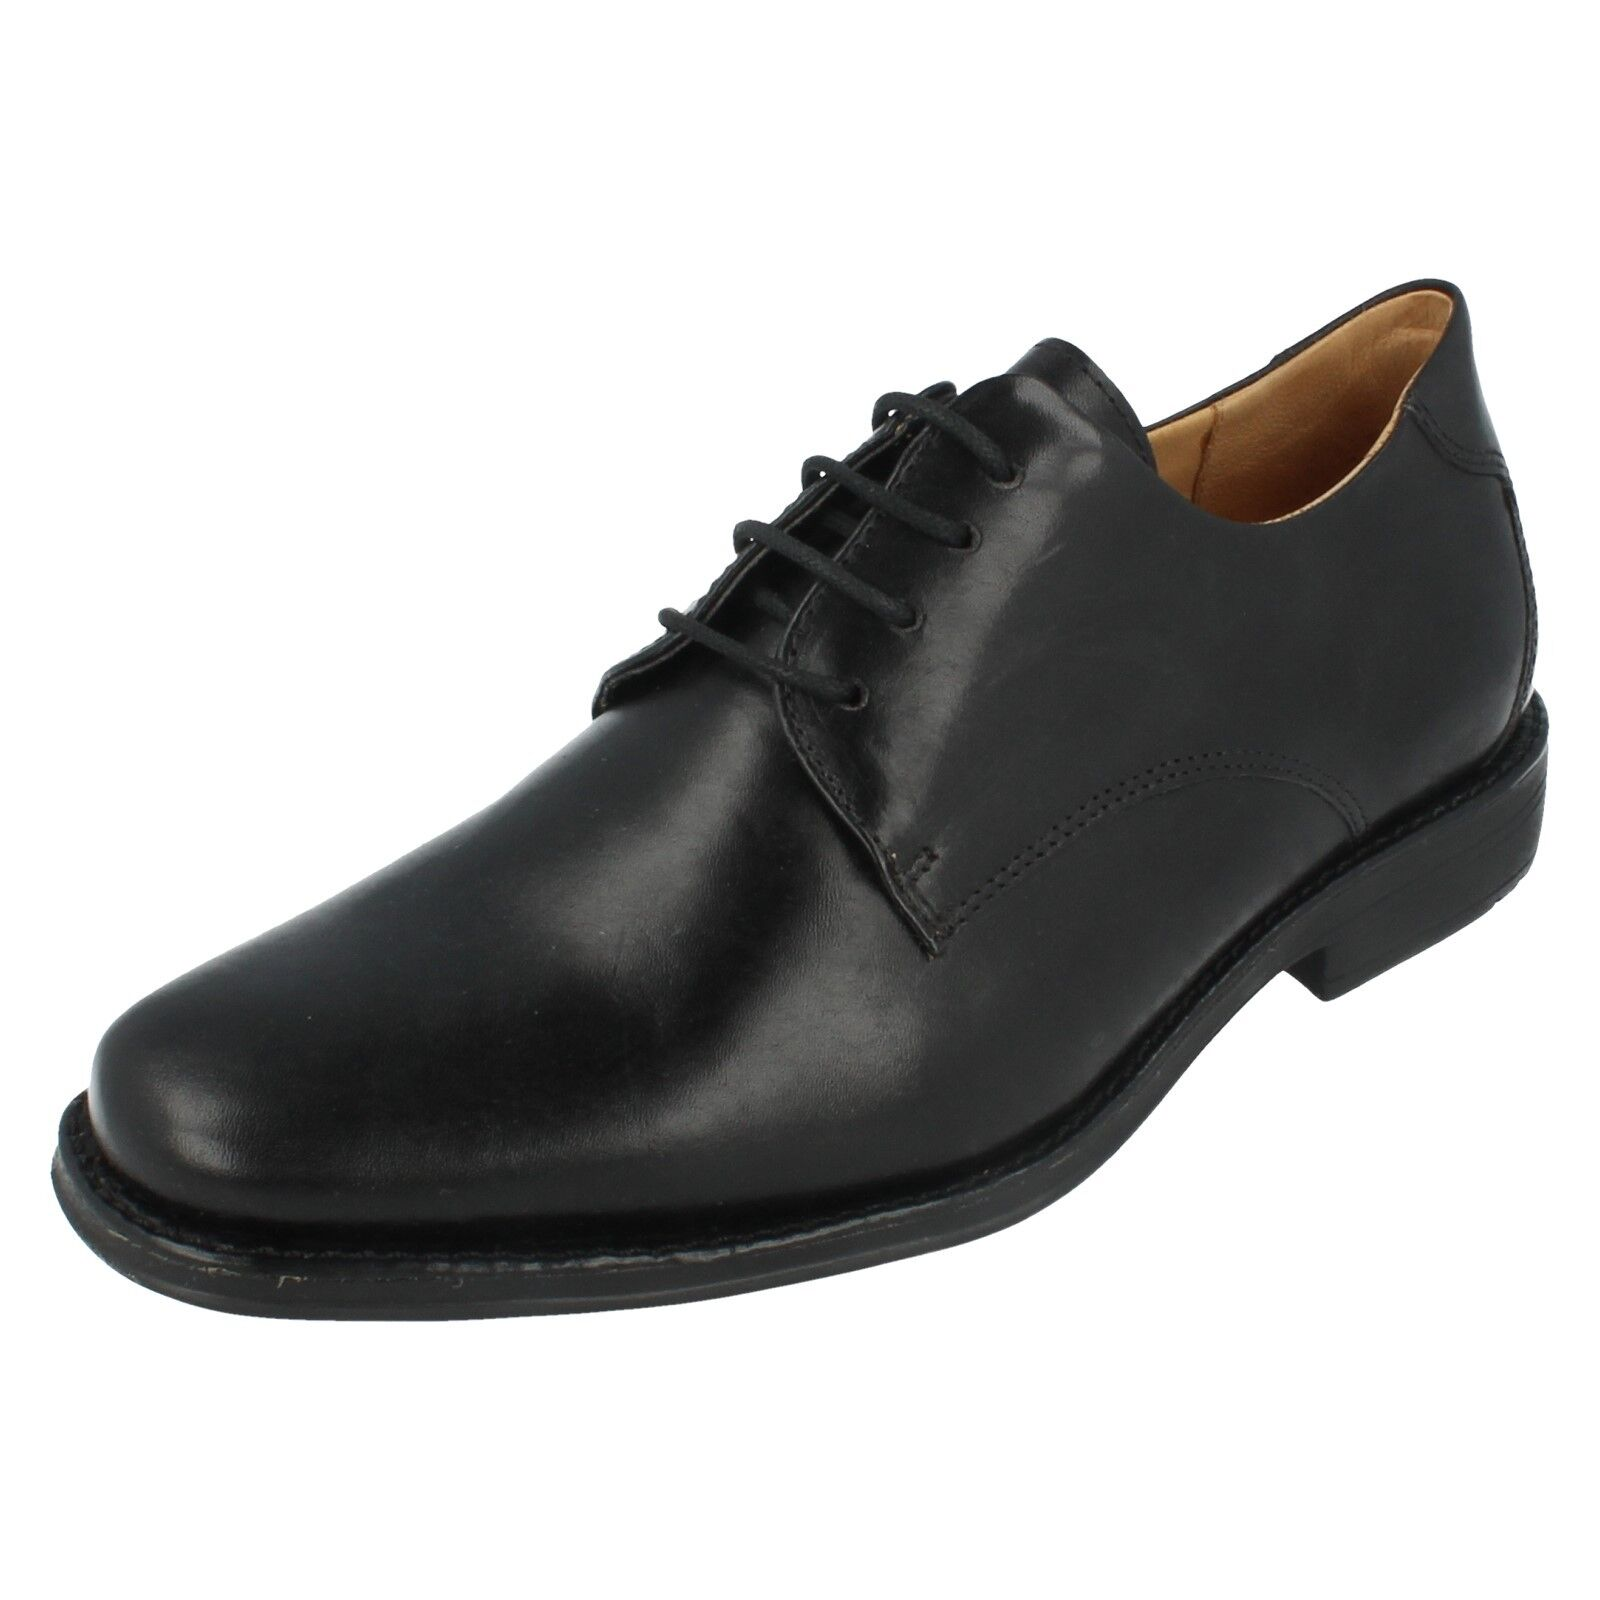 Mens Leme Black Leather Lace Up Shoes by Anatomic - £95.00